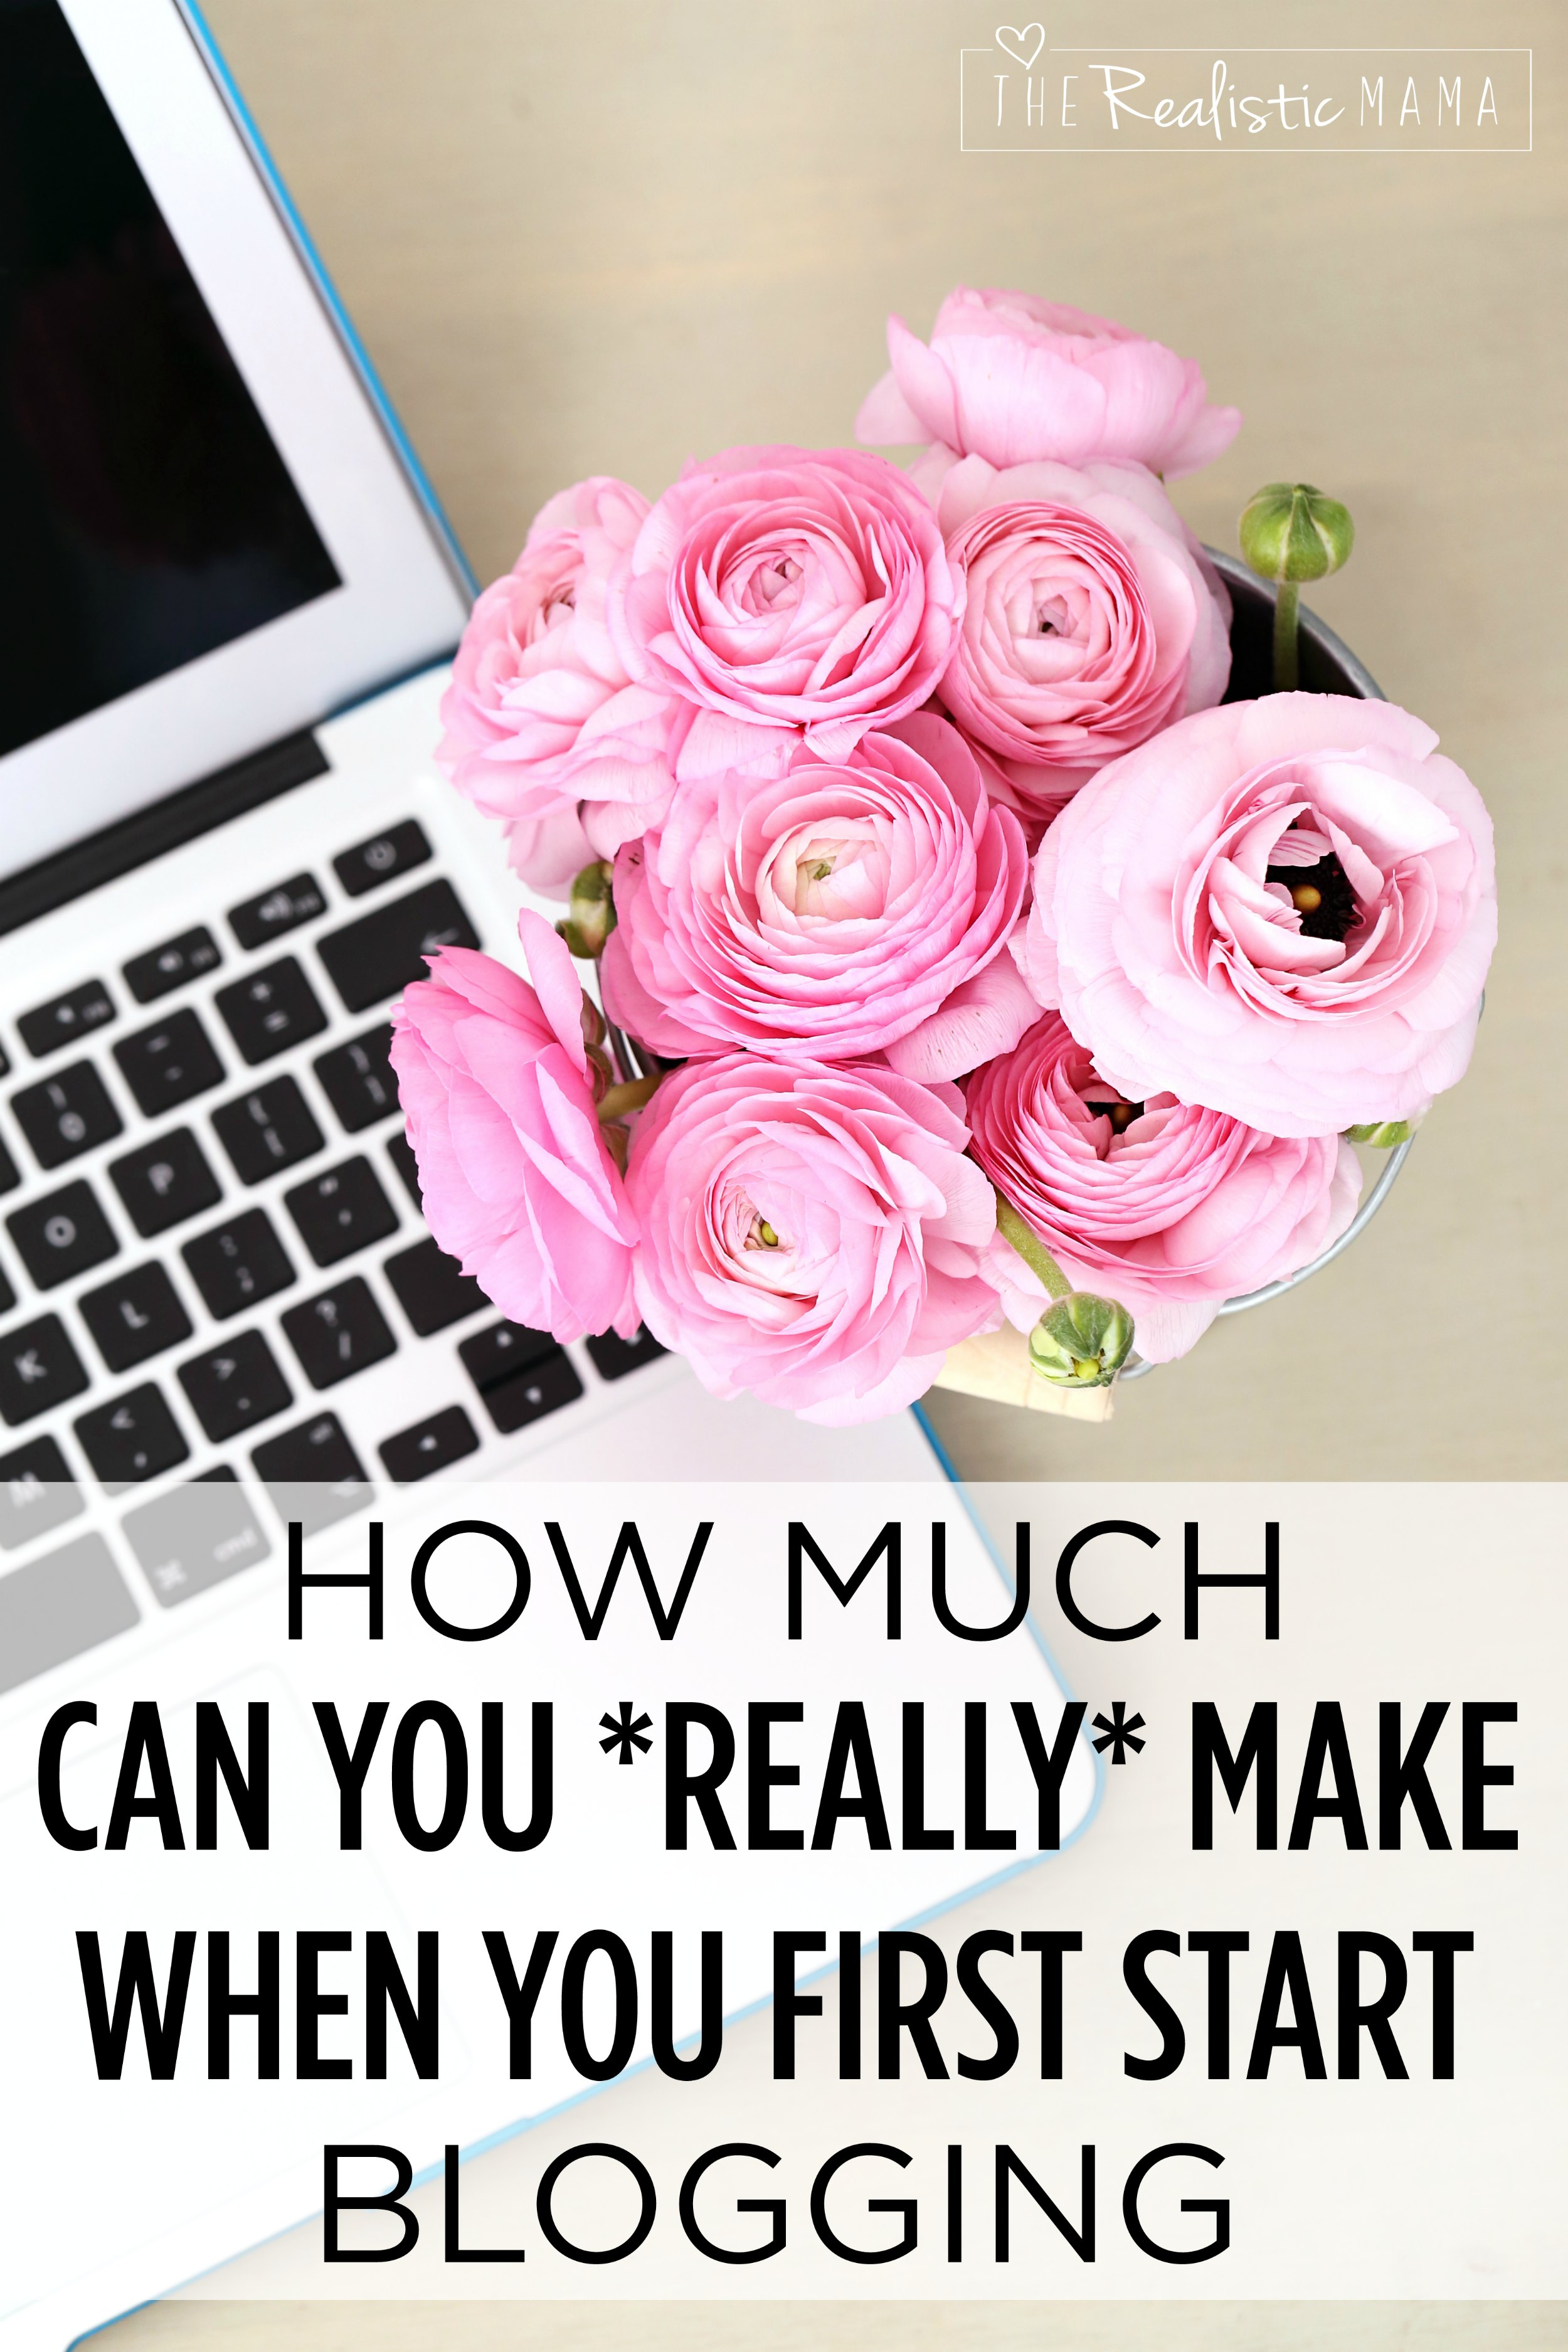 How much can you really make when you first start blogging.